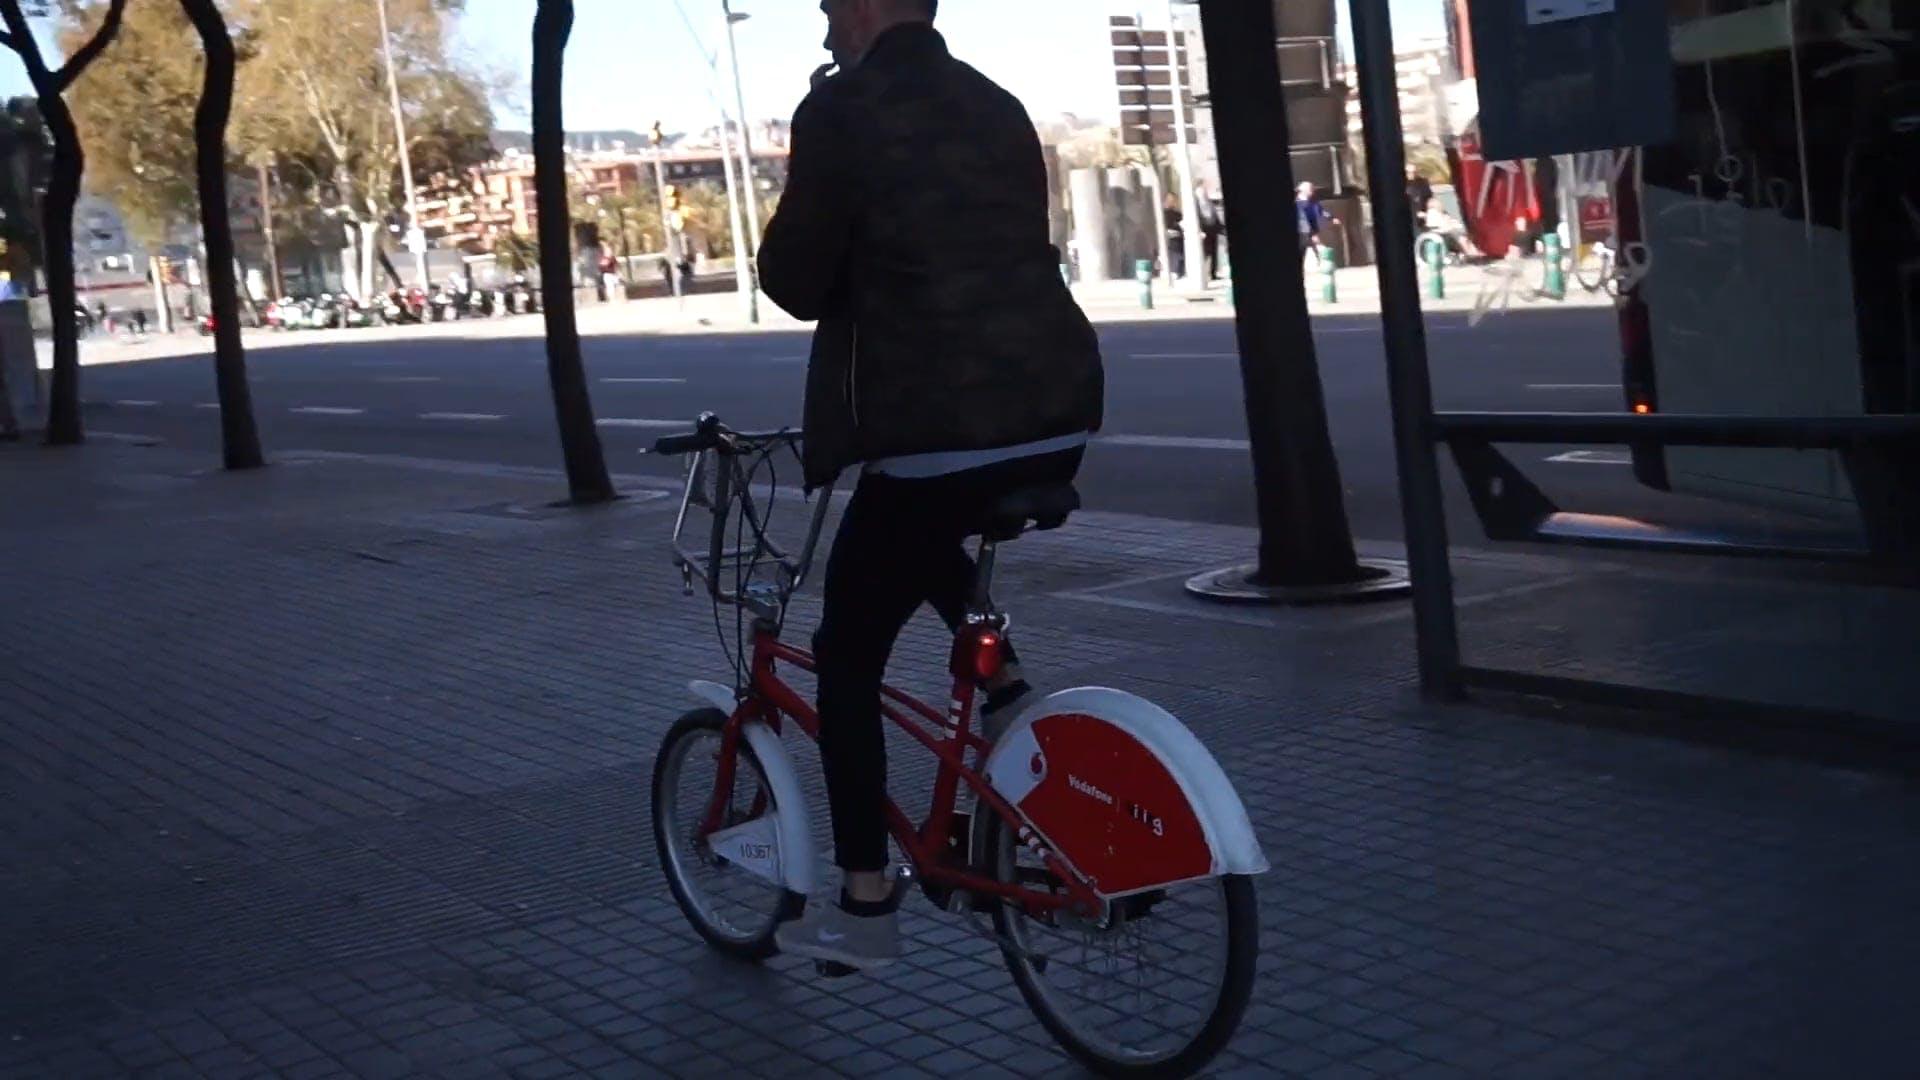 Man Riding On A Red Bicycle